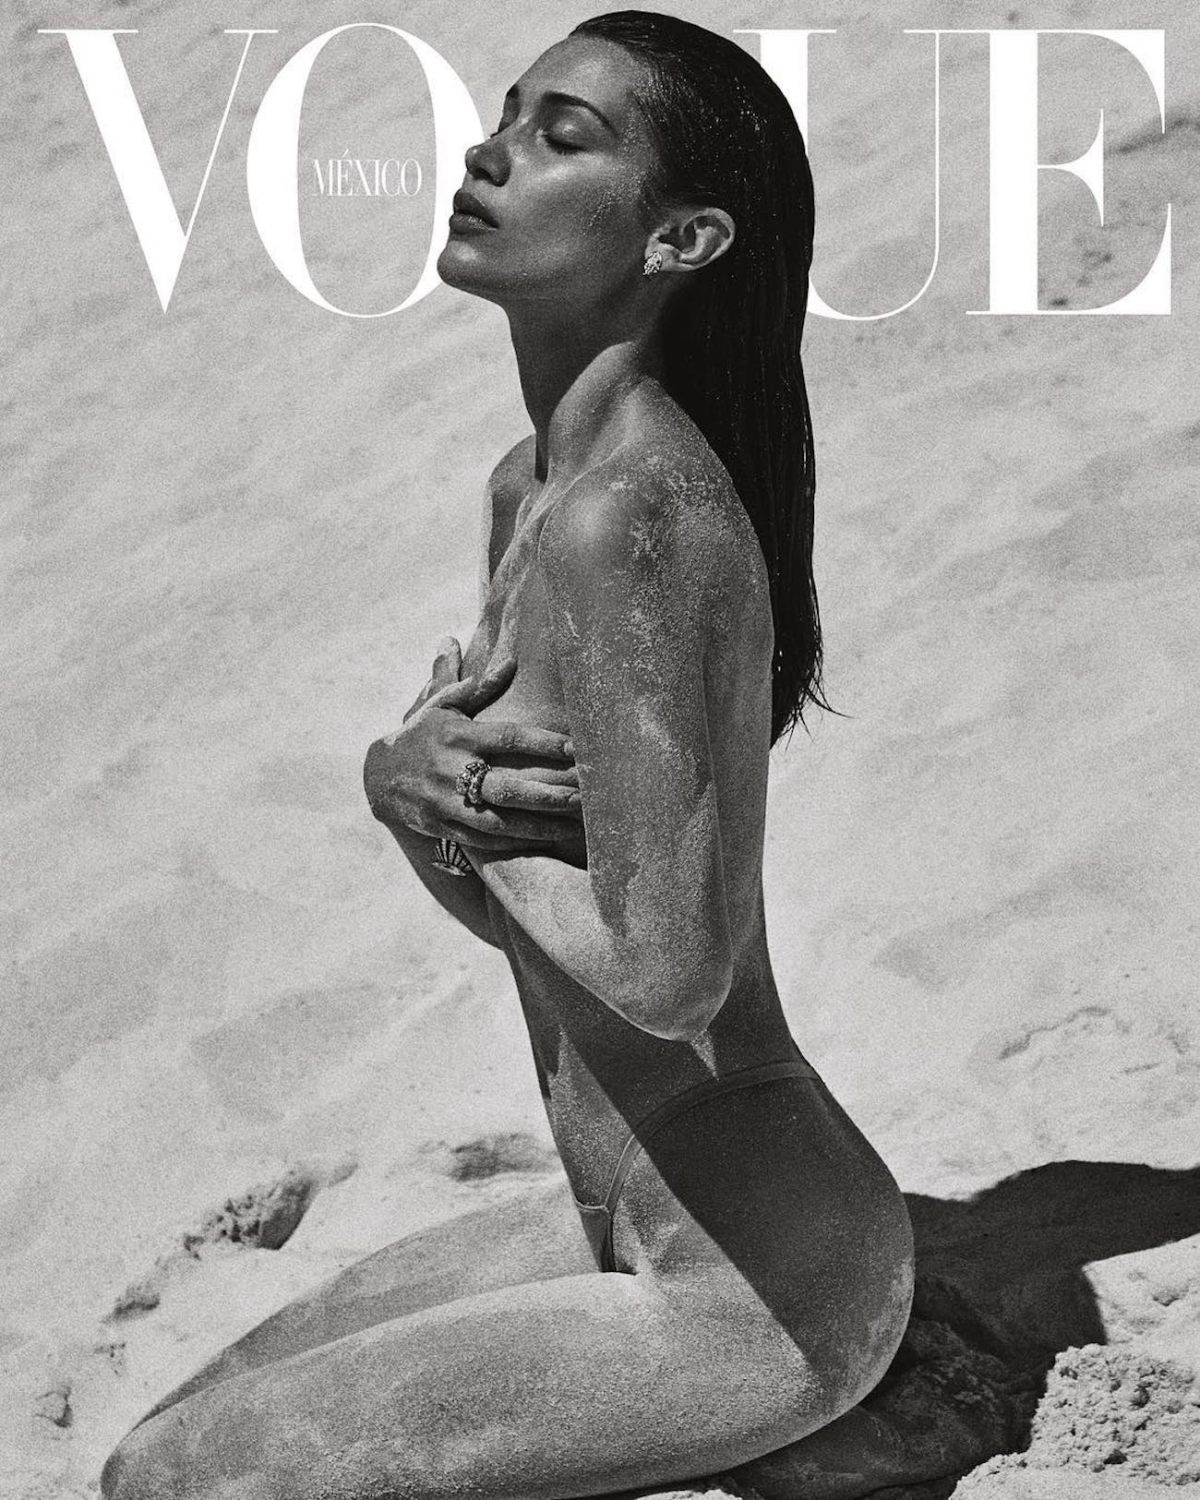 Bella Hadid Goes Topless for the July Issue of VOUGE Mexico [NSFW PICS]